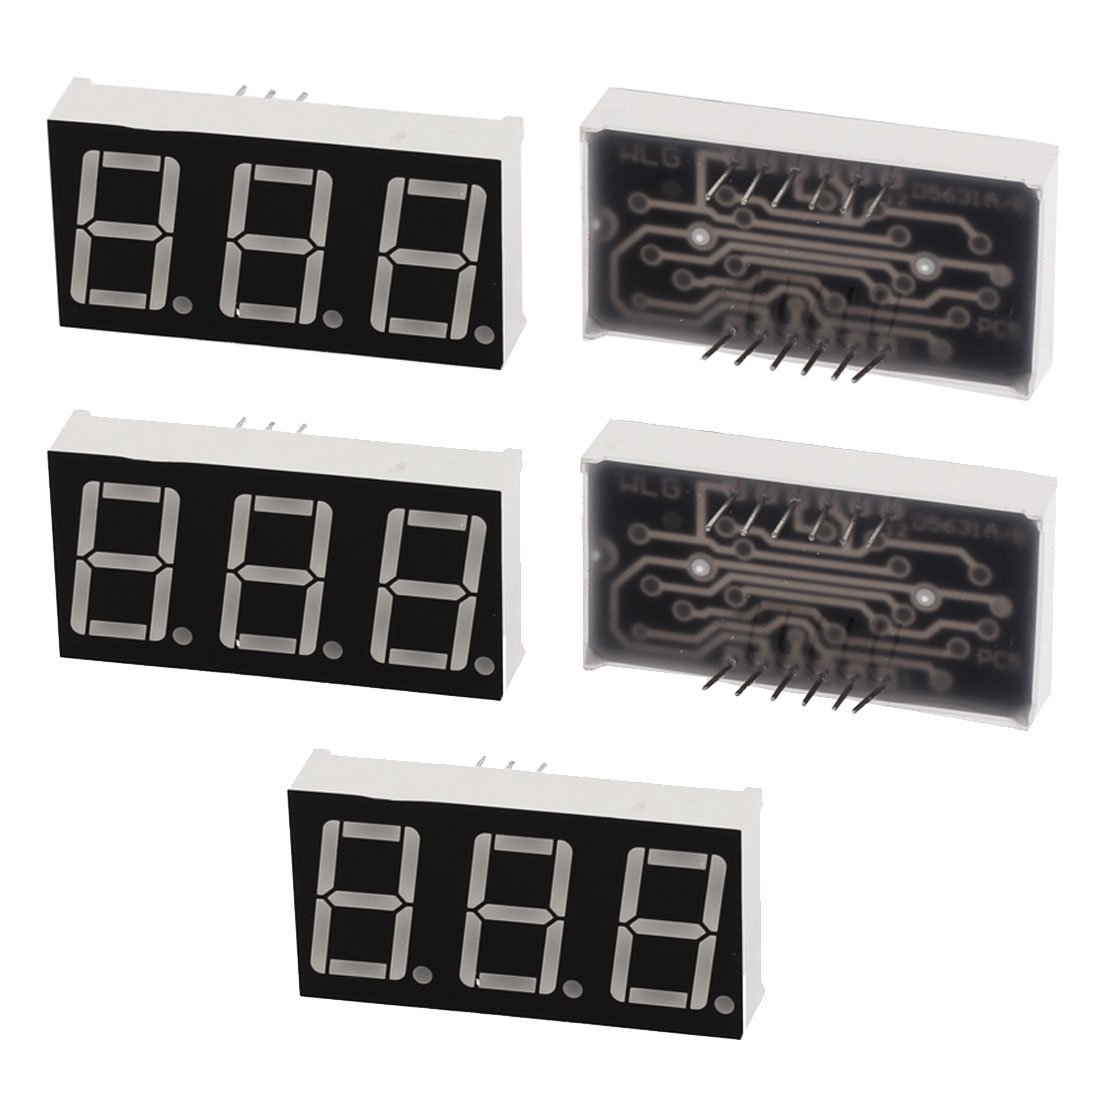 Uxcell a15111200ux0534 Double Row 12 Pin 7 Segments 3 Digits LED Numeric Display Module, 5 Piece, Blue